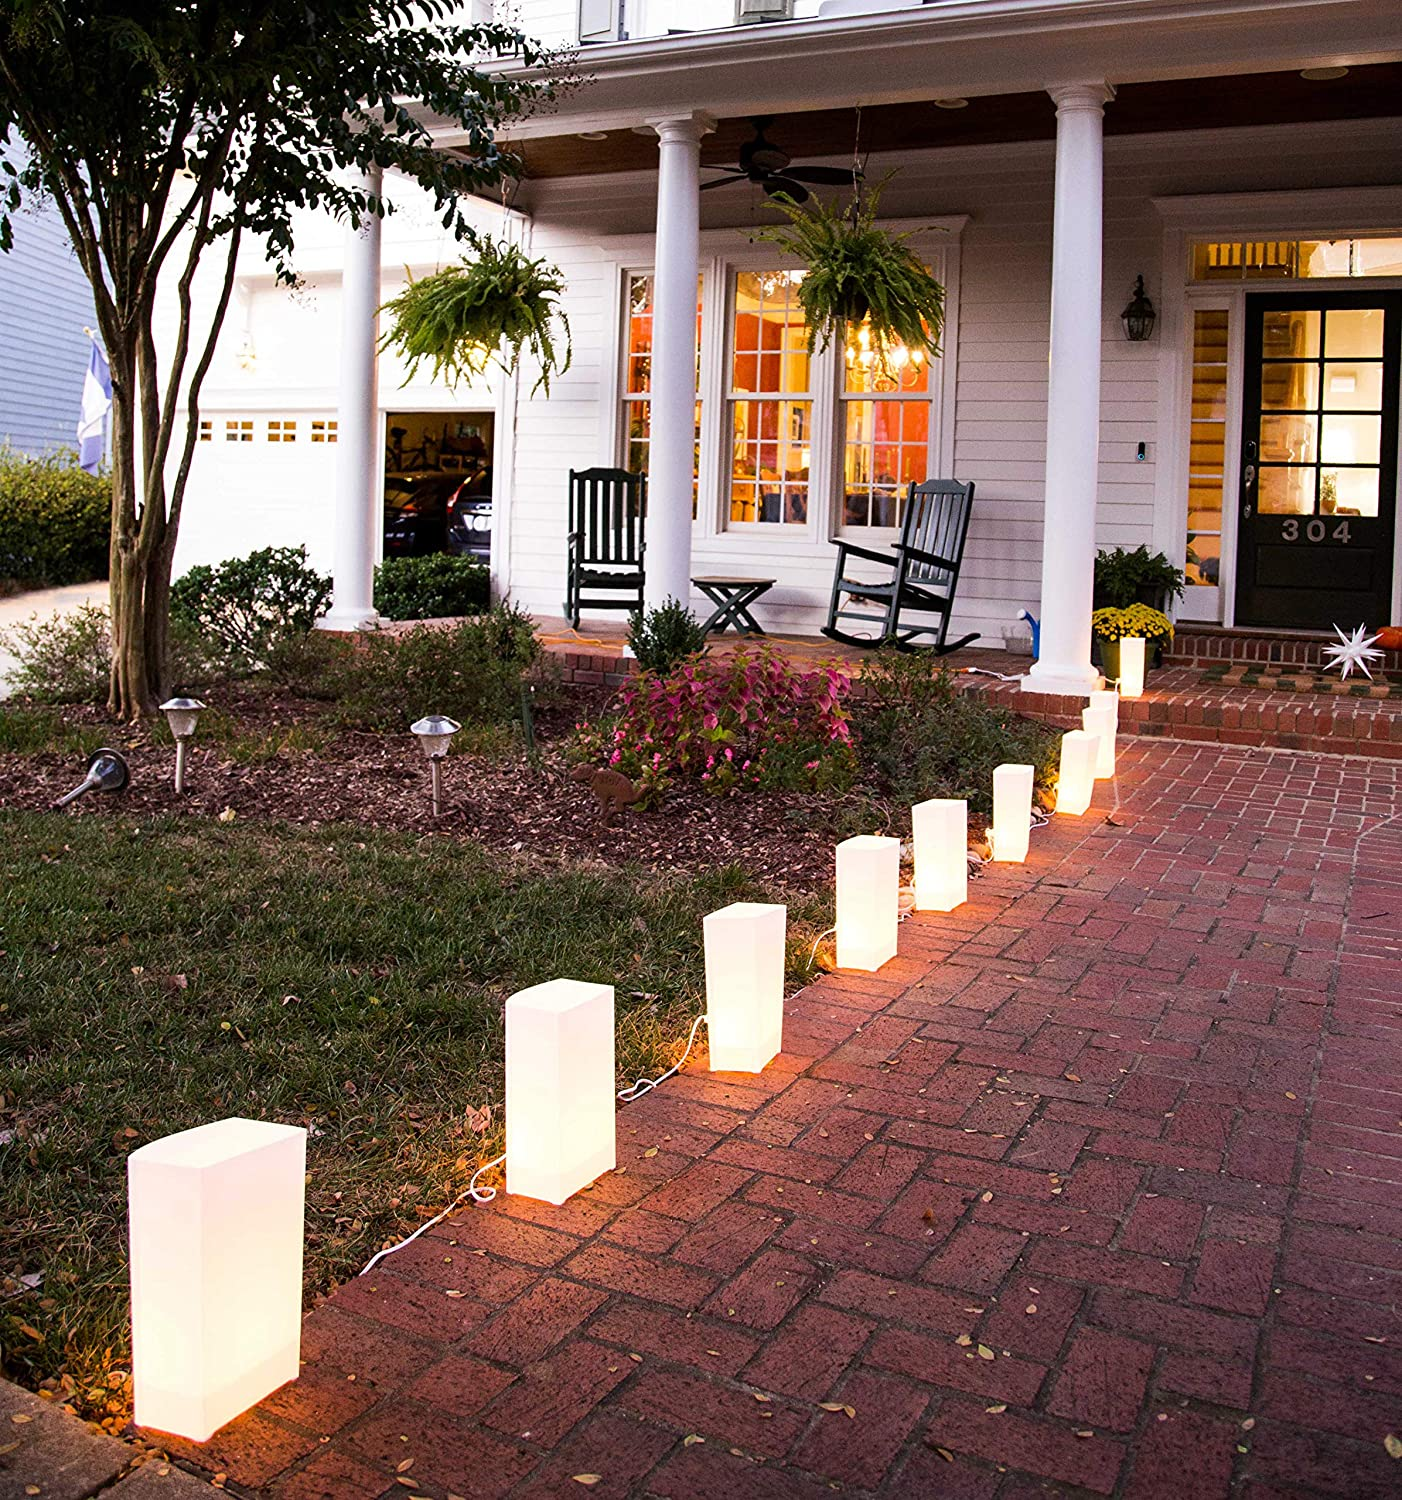 Amazon Com Elf Logic Set Of 10 Electric Luminary Bags Incandescent Lights Plug In And Weatherproof Vellum Christmas Pathway Lighting Reusable Luminary Bags Perfect Outdoor Holiday Lights Home Improvement